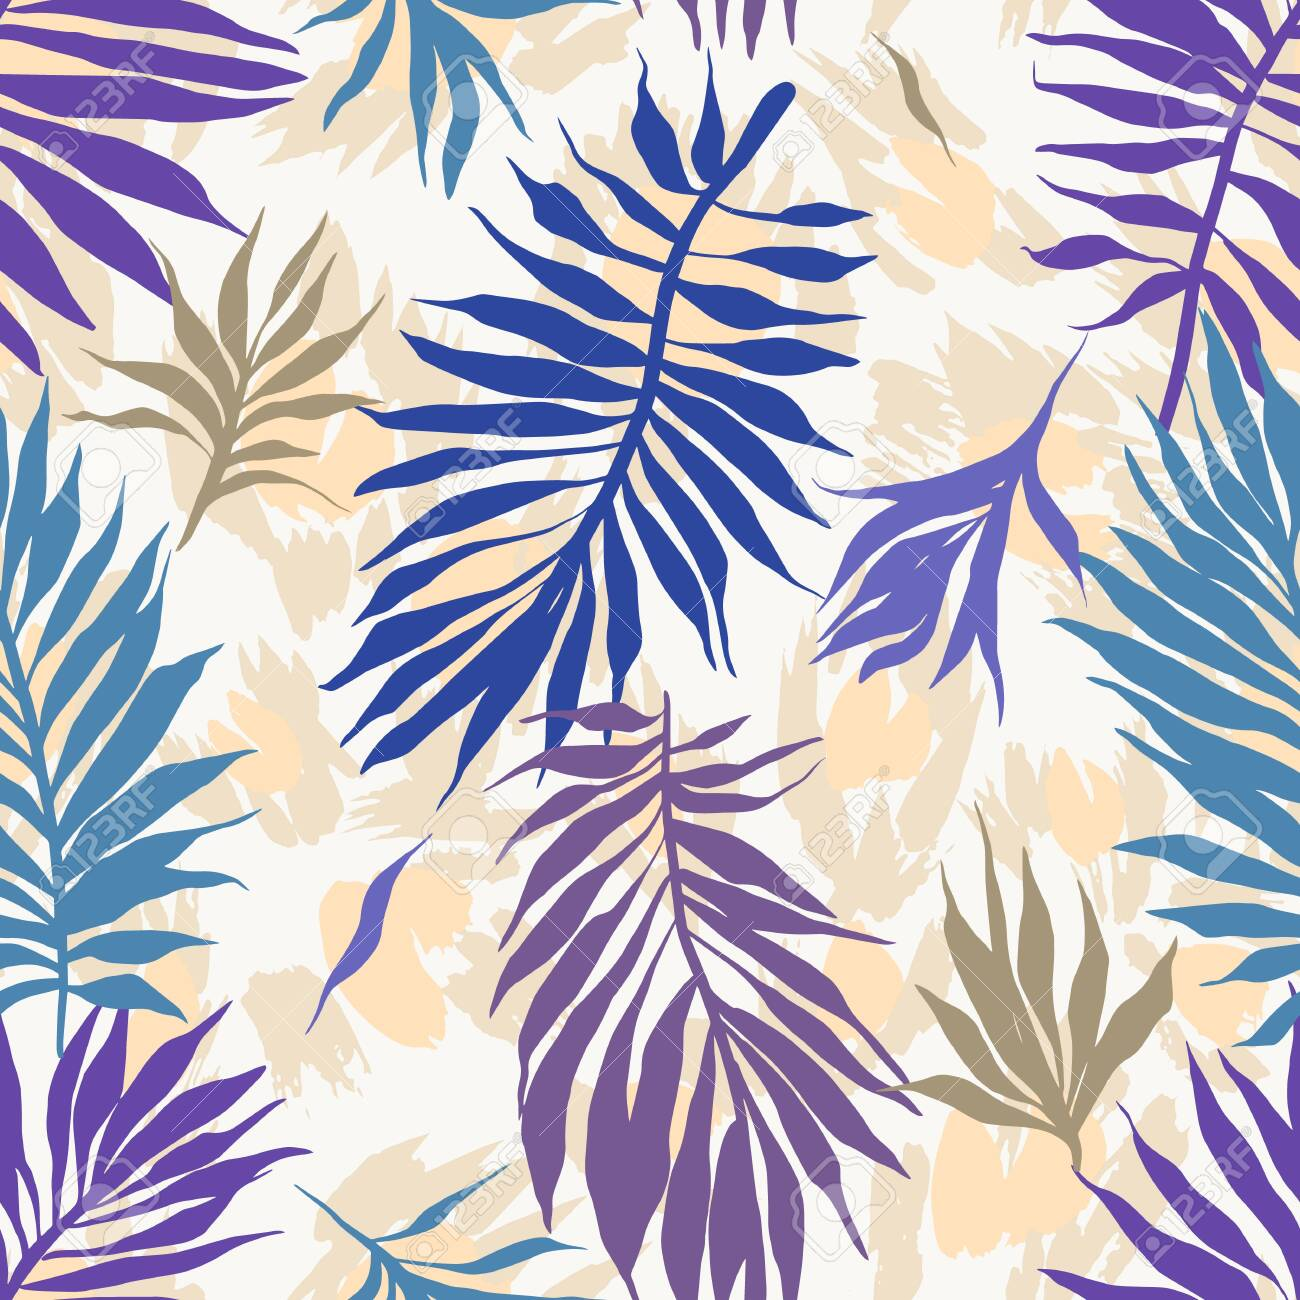 Abstract seamless tropical plants pattern. Hand drawn fantasy exotic sprigs with leopard skin background. Floral illustration made of herbal foliage leaves. Good for wallpaper, textile, fabric, fashion. - 154661419